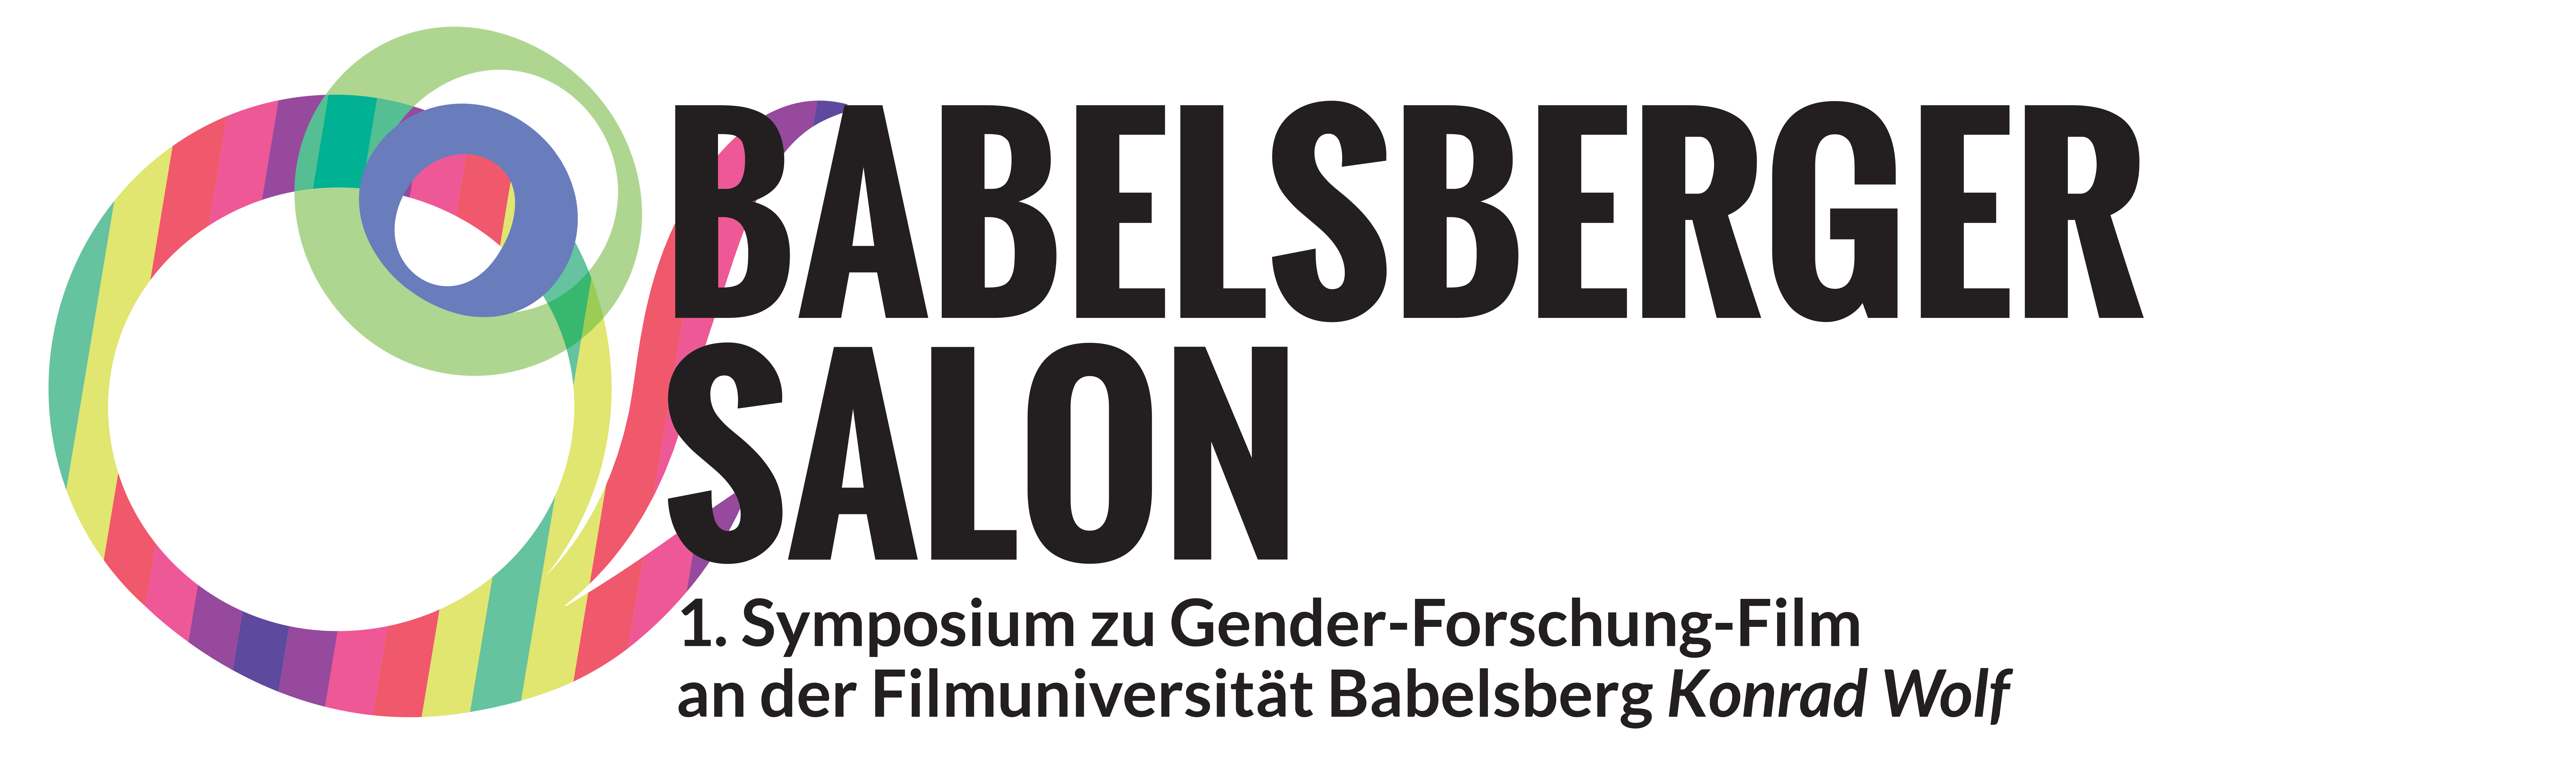 Babelsberger Salon